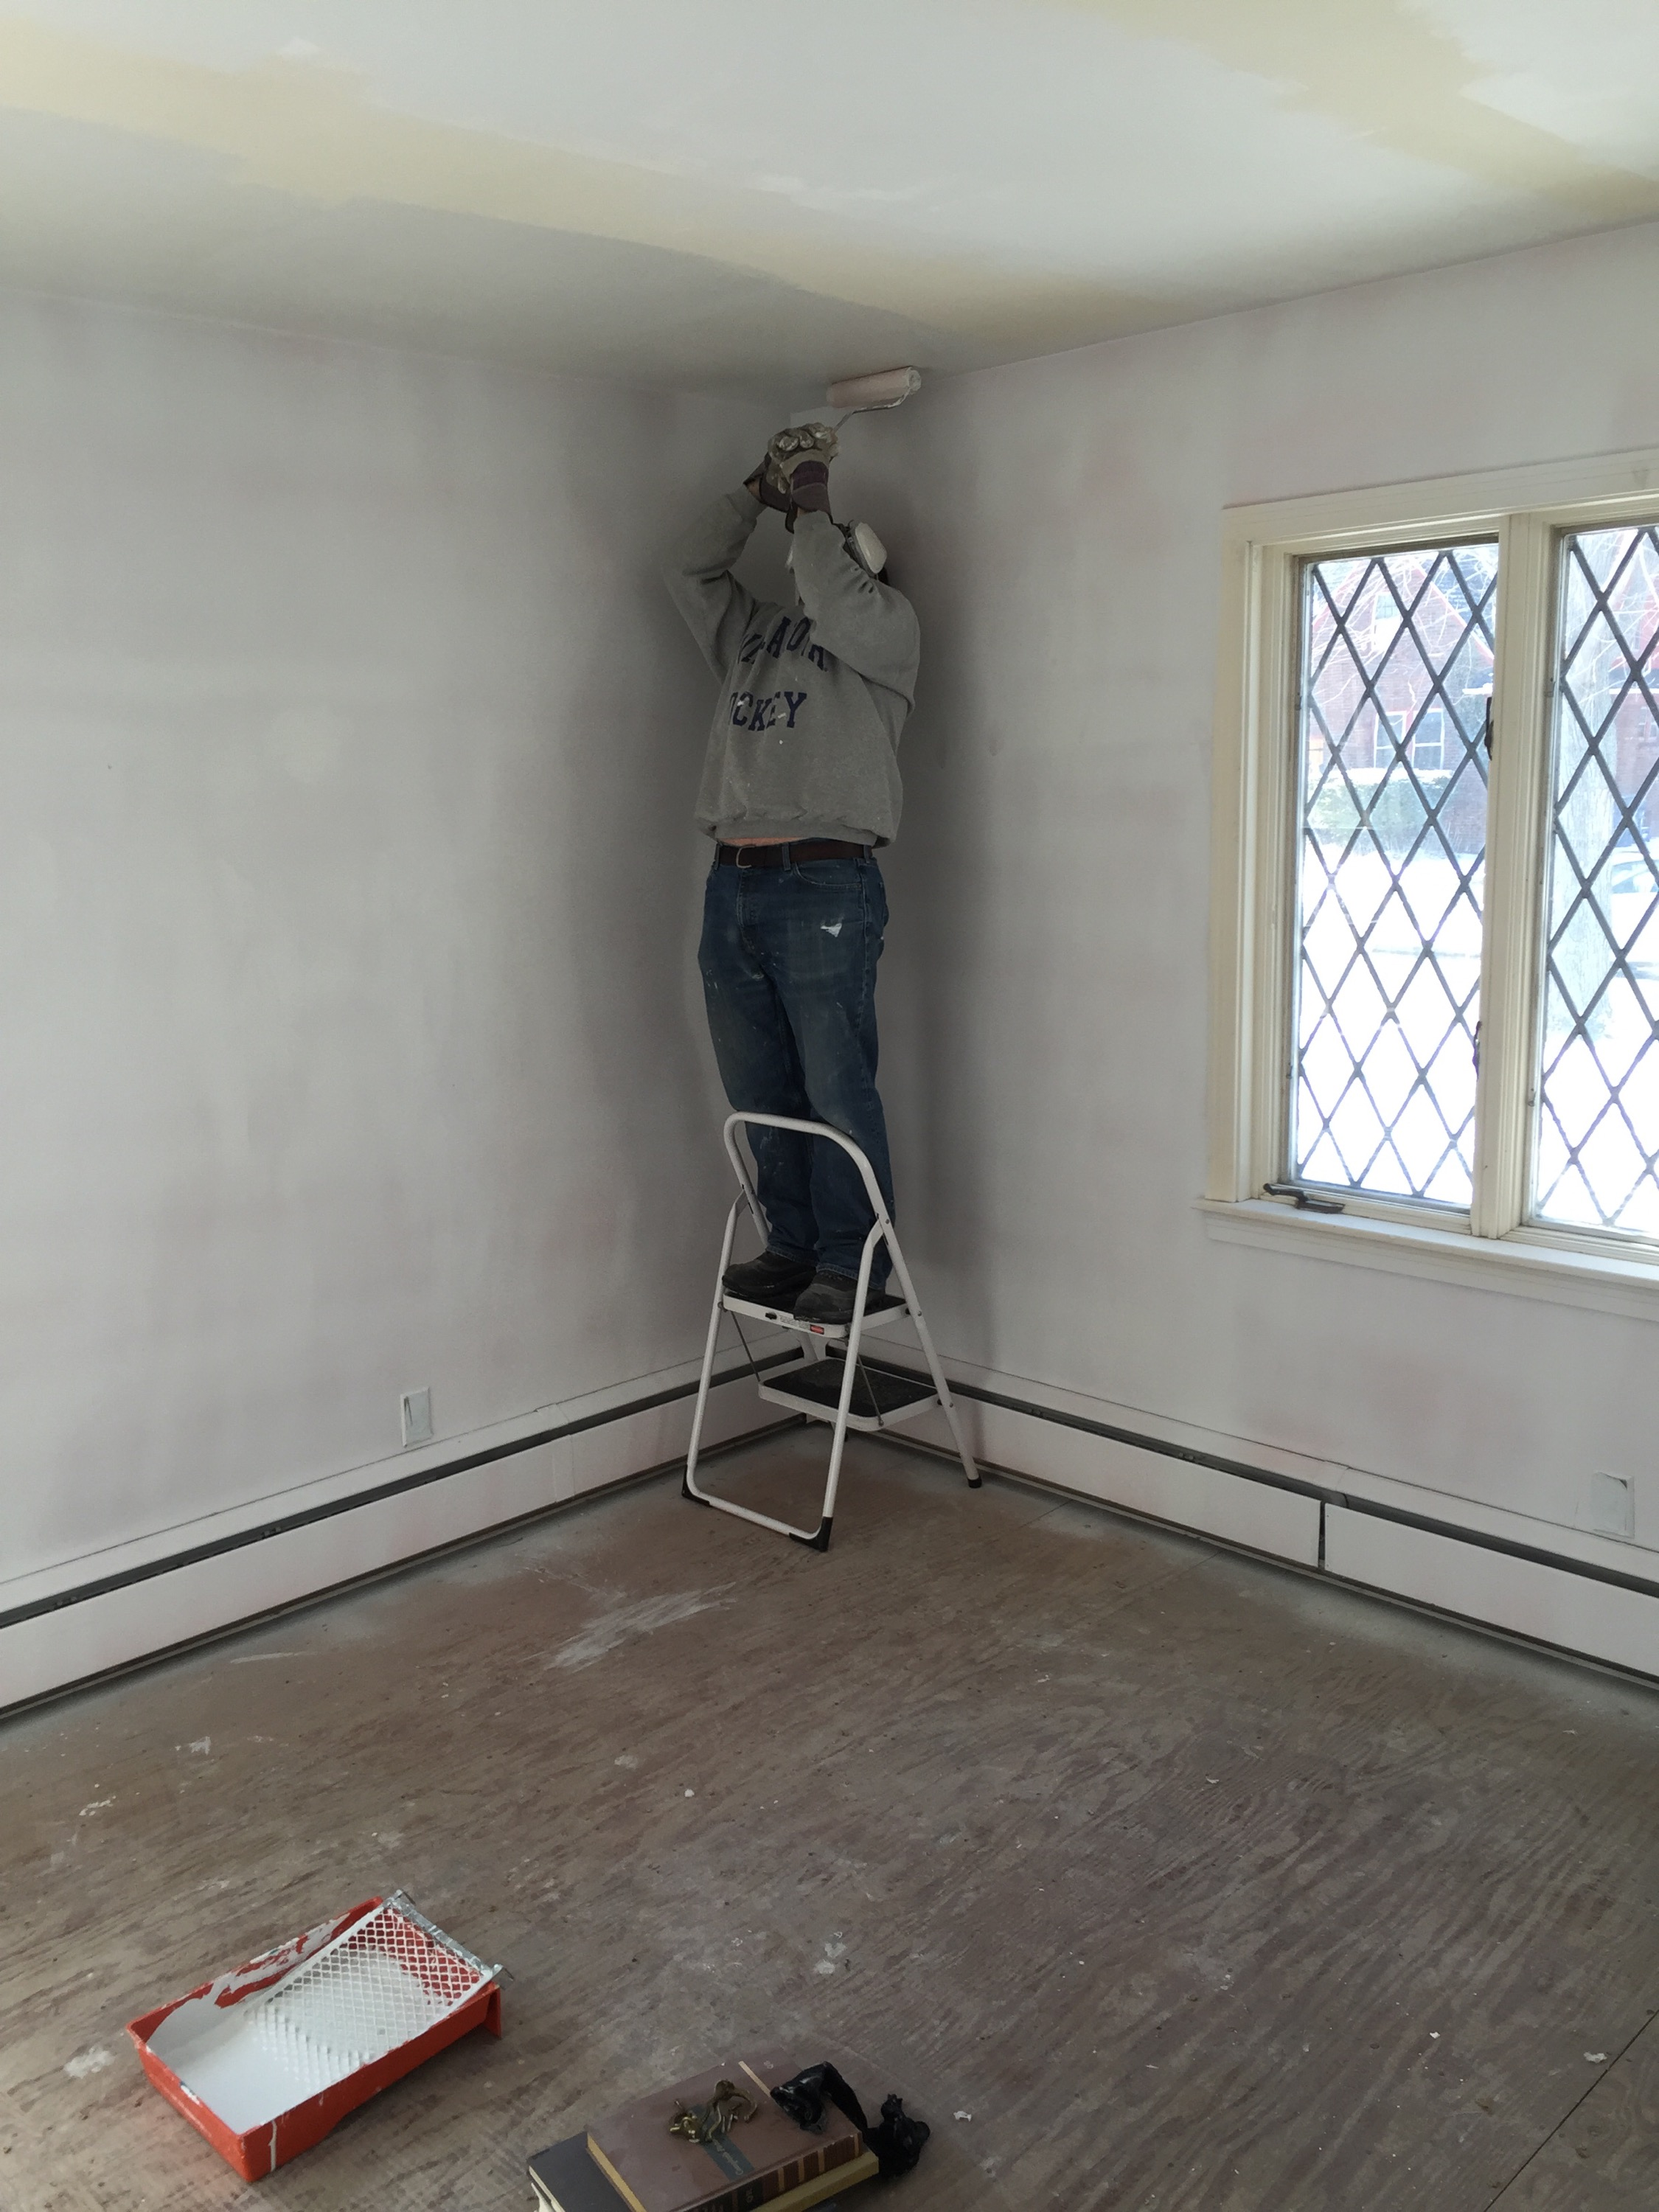 Primer for bathroom ceiling - The Ceilings Were The Hardest Part But Mr Did A Fantastic Job I Offered To Help And I Offered A Pole But He Said It Was Easier His Way